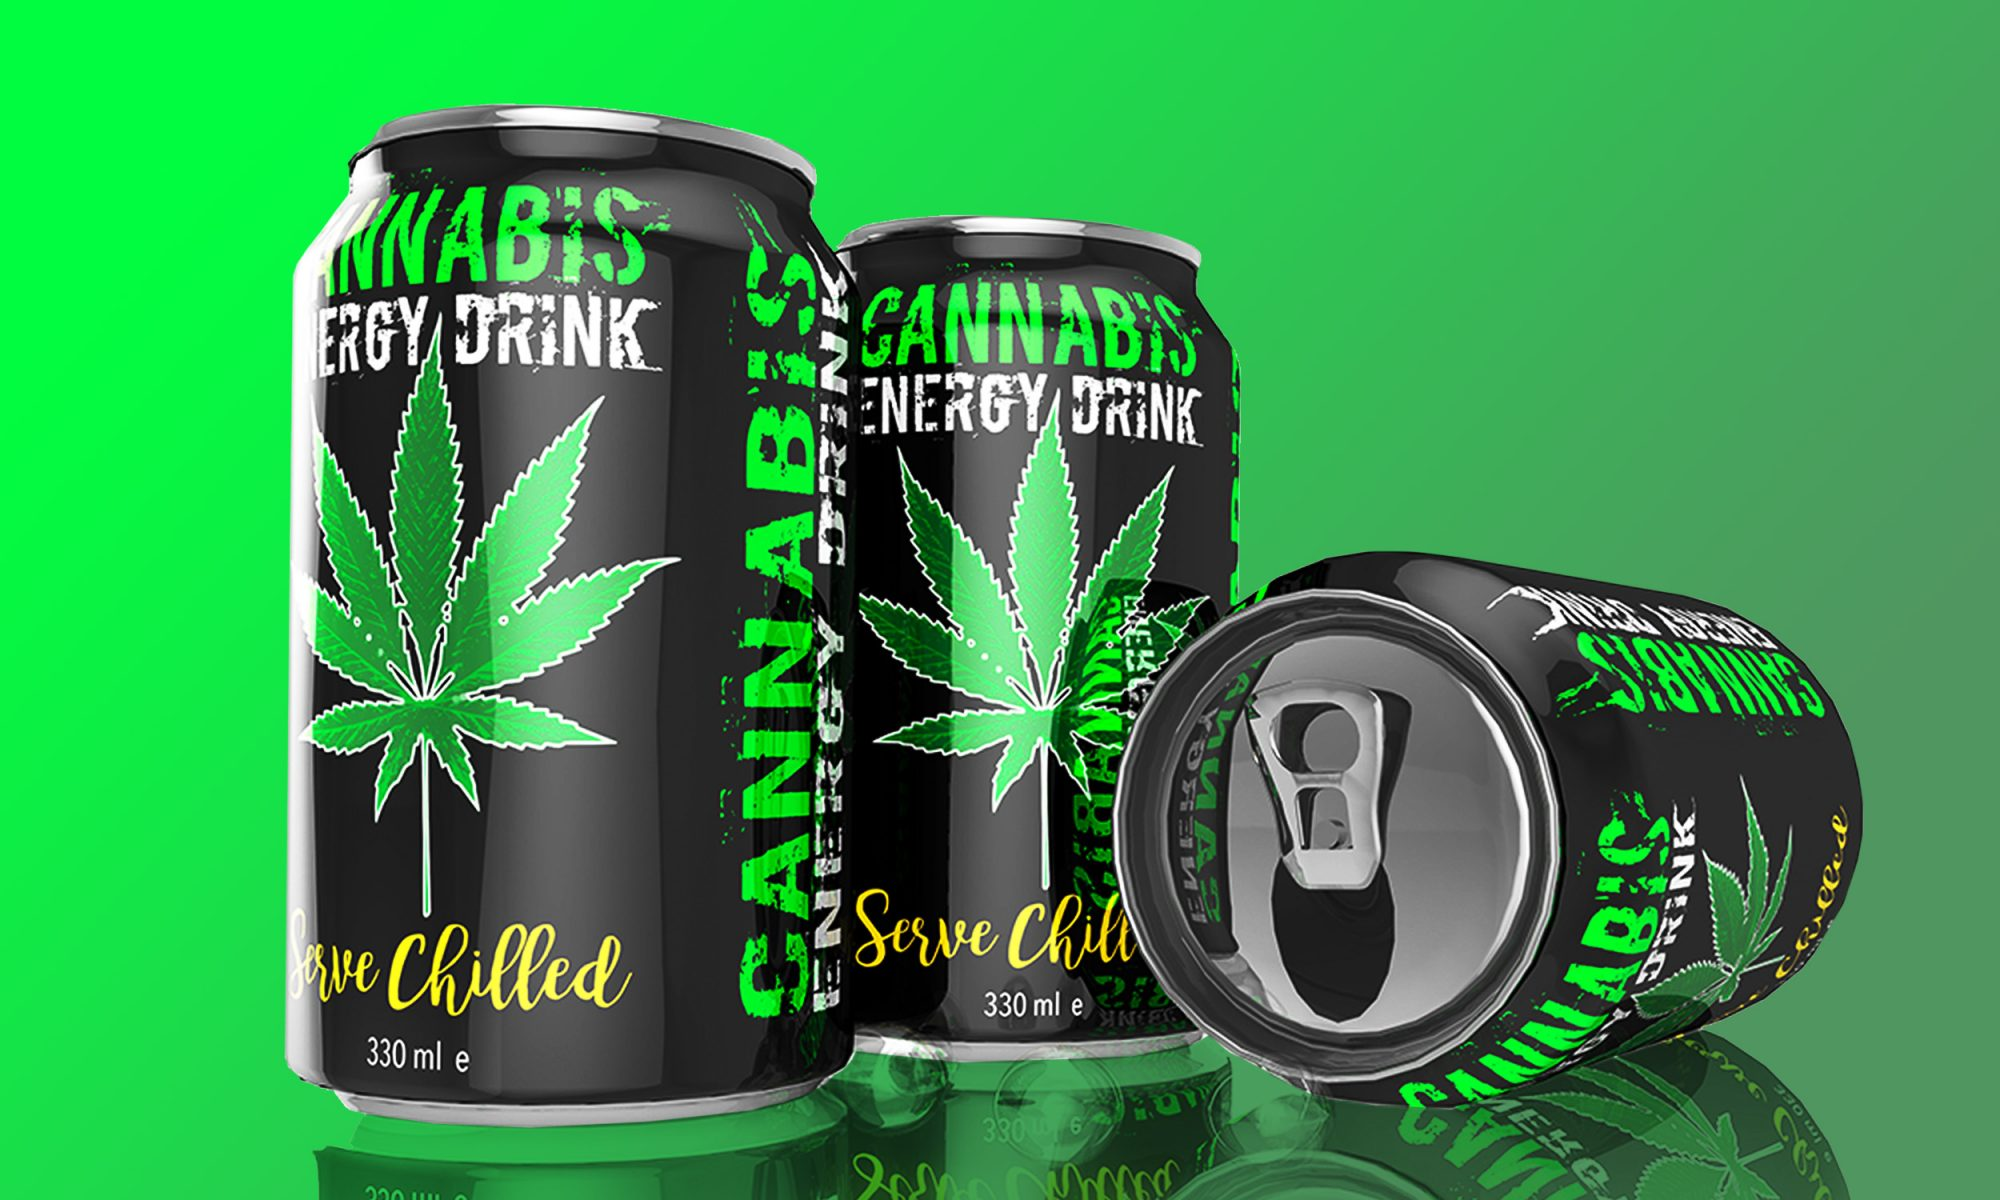 This Liquor Company Plans to Make Weed-Infused Drinks